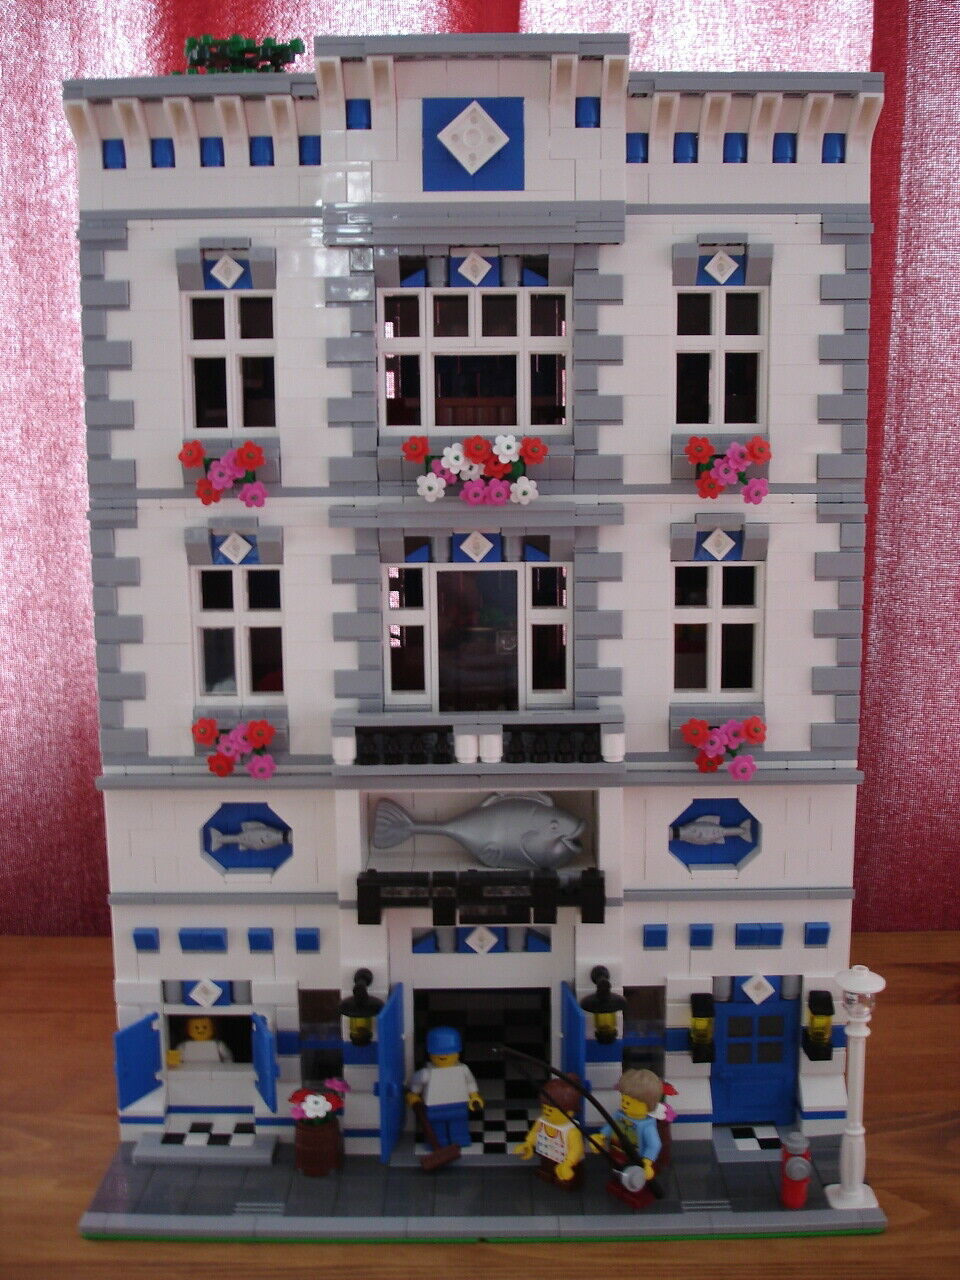 Lego Modular Fish Monger shop fits with 10182, 10185 24 hr delivery via UPS